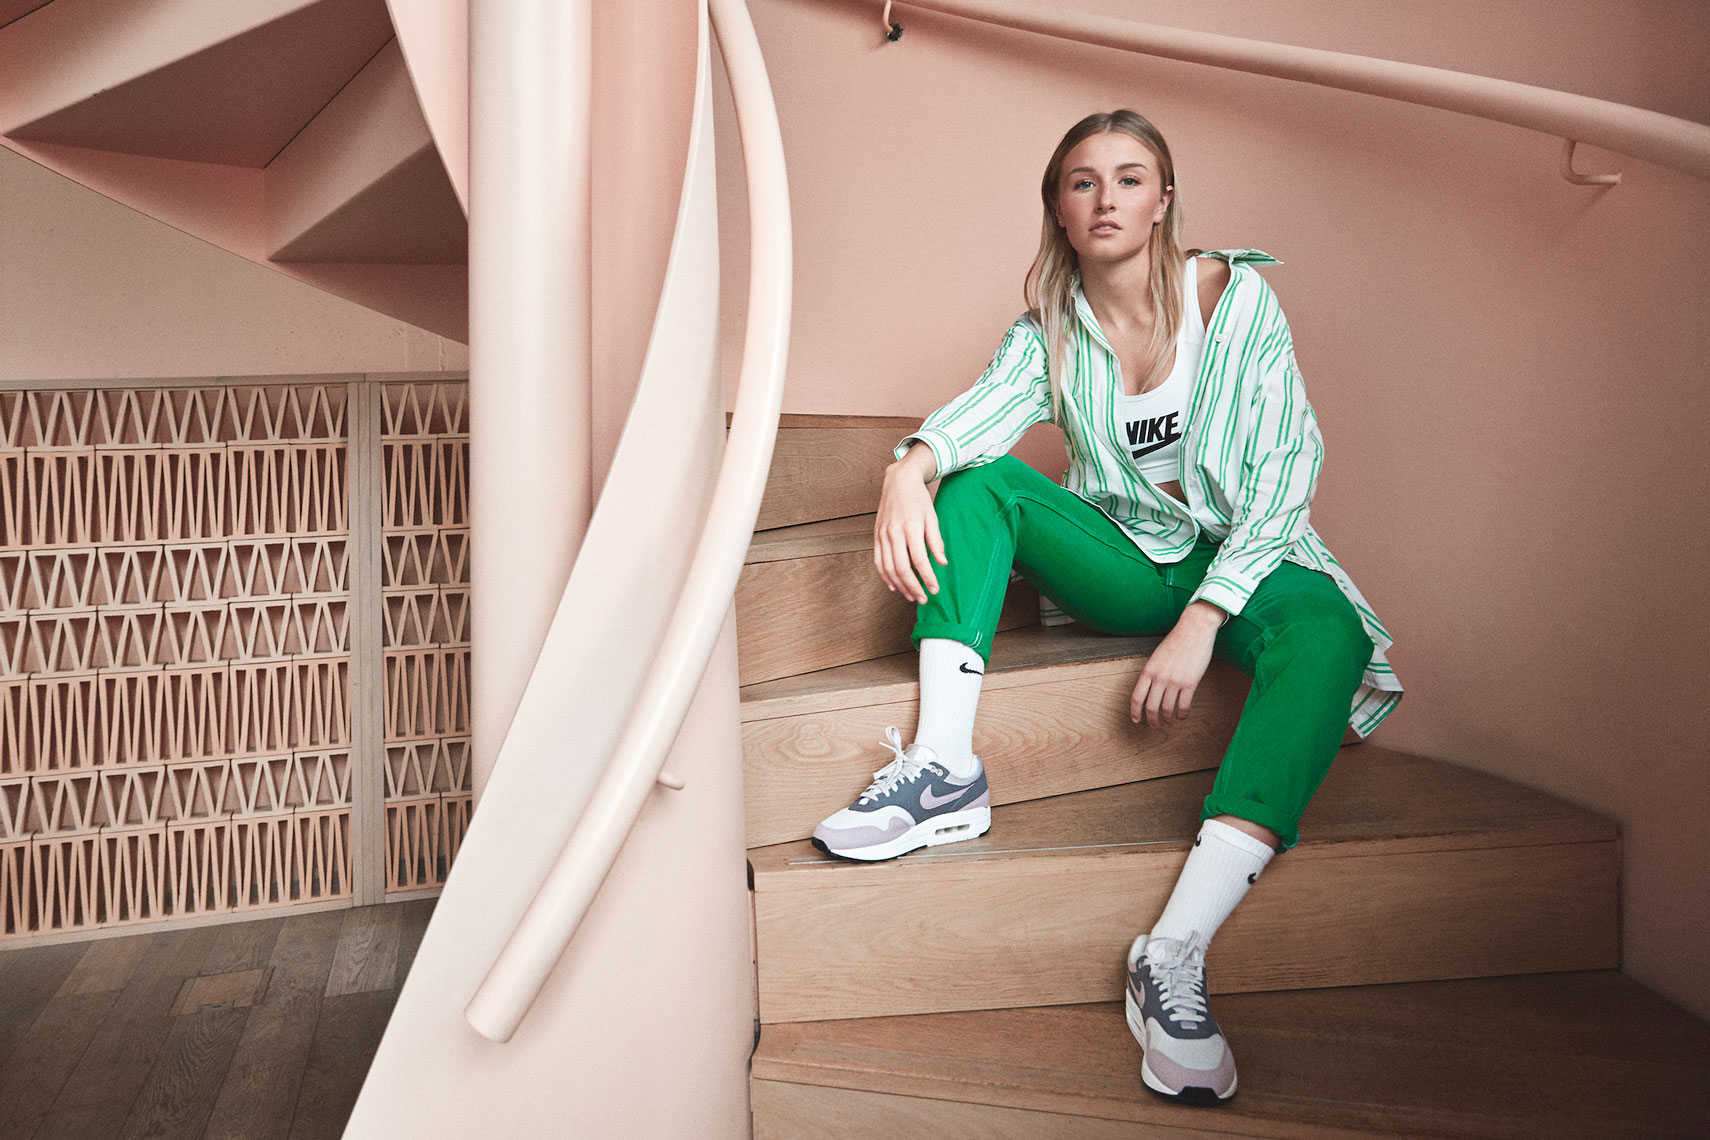 issie-gibbons-nike-airmax-leah-williamsonn-football-arsenal-women-female-green-pink